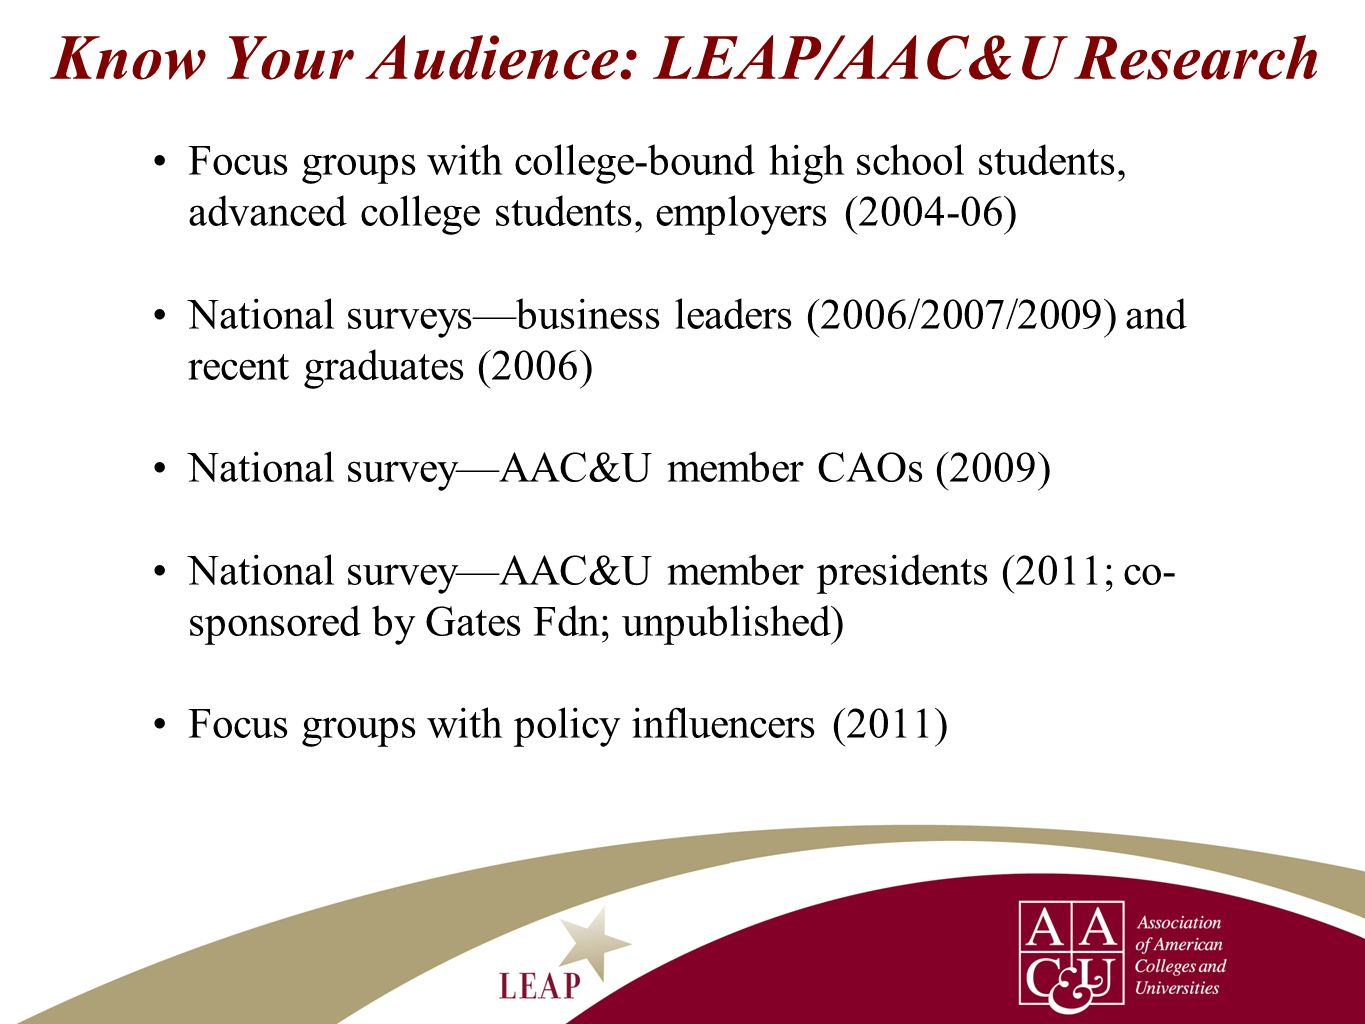 Know Your Audience: LEAP/AAC&U Research